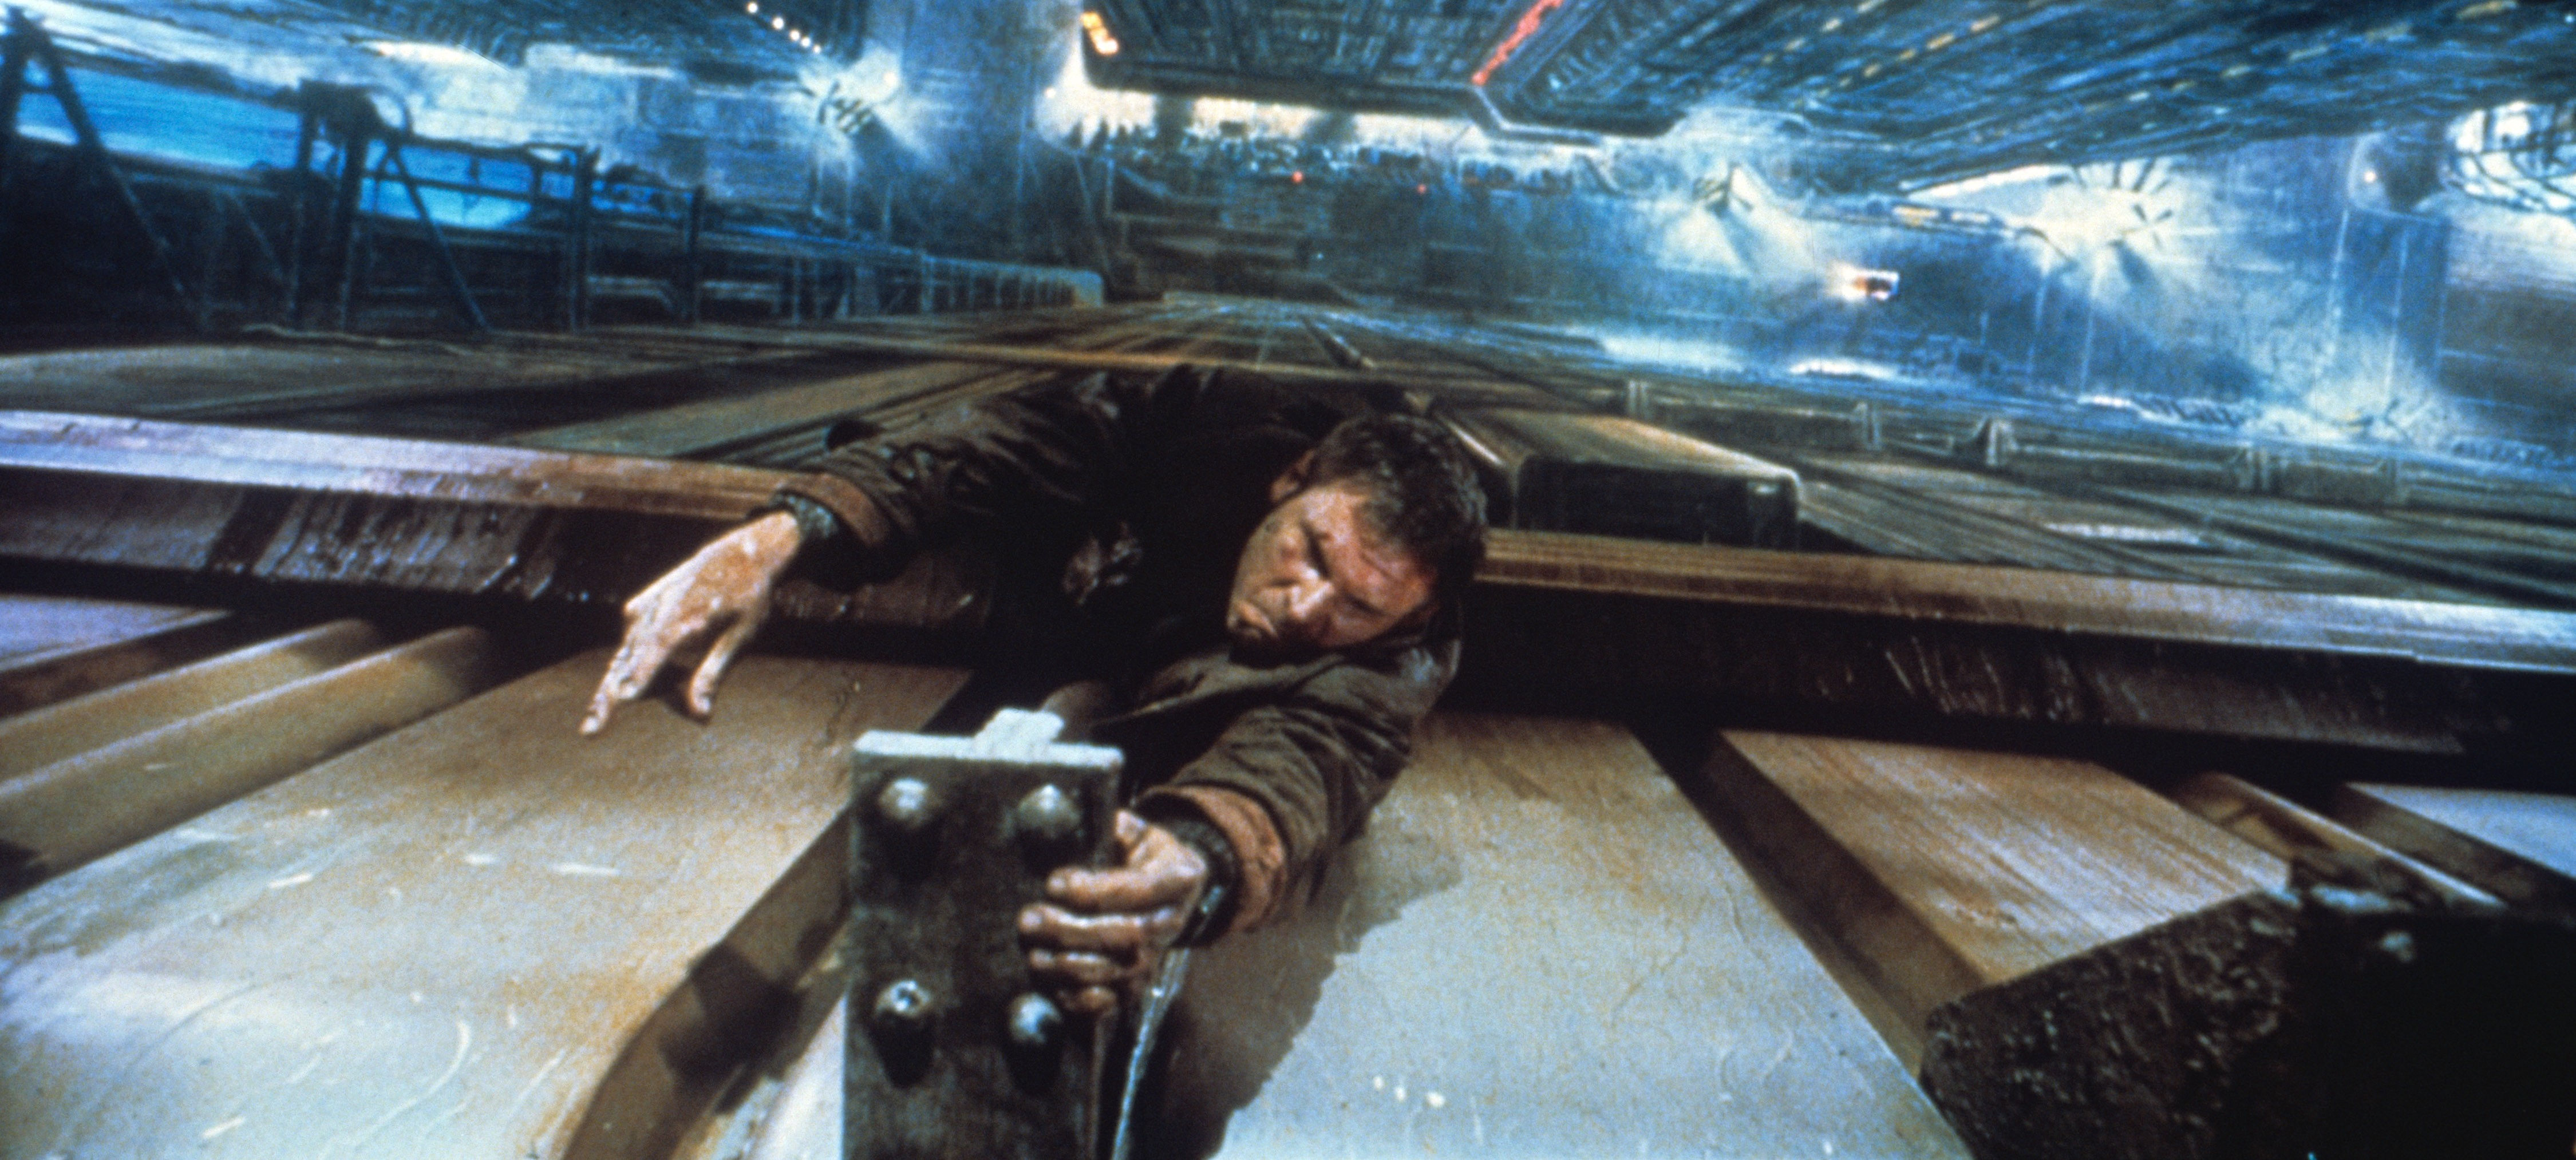 essay on violence in blade runner Similarly within a contemporary context, blade runner explores the universal question of what defines humanity by emphasizing replicants will to live this is seen as an effect of a globalized community where the commodification of humanity has rested in moral and emotional decay.